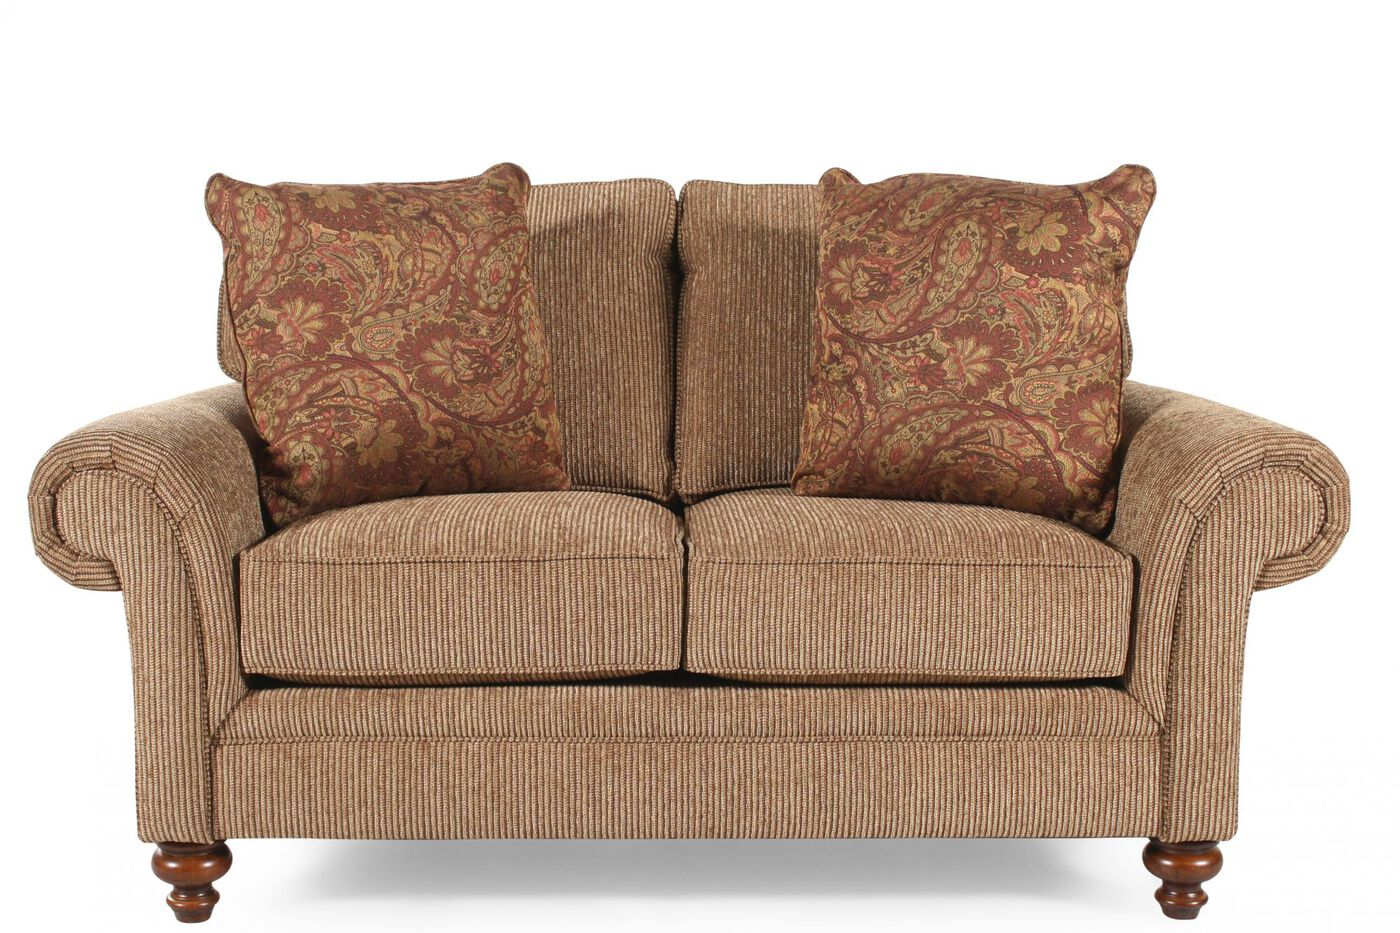 Textured traditional 66 loveseat in nut brown mathis for Traditional sofas and loveseats